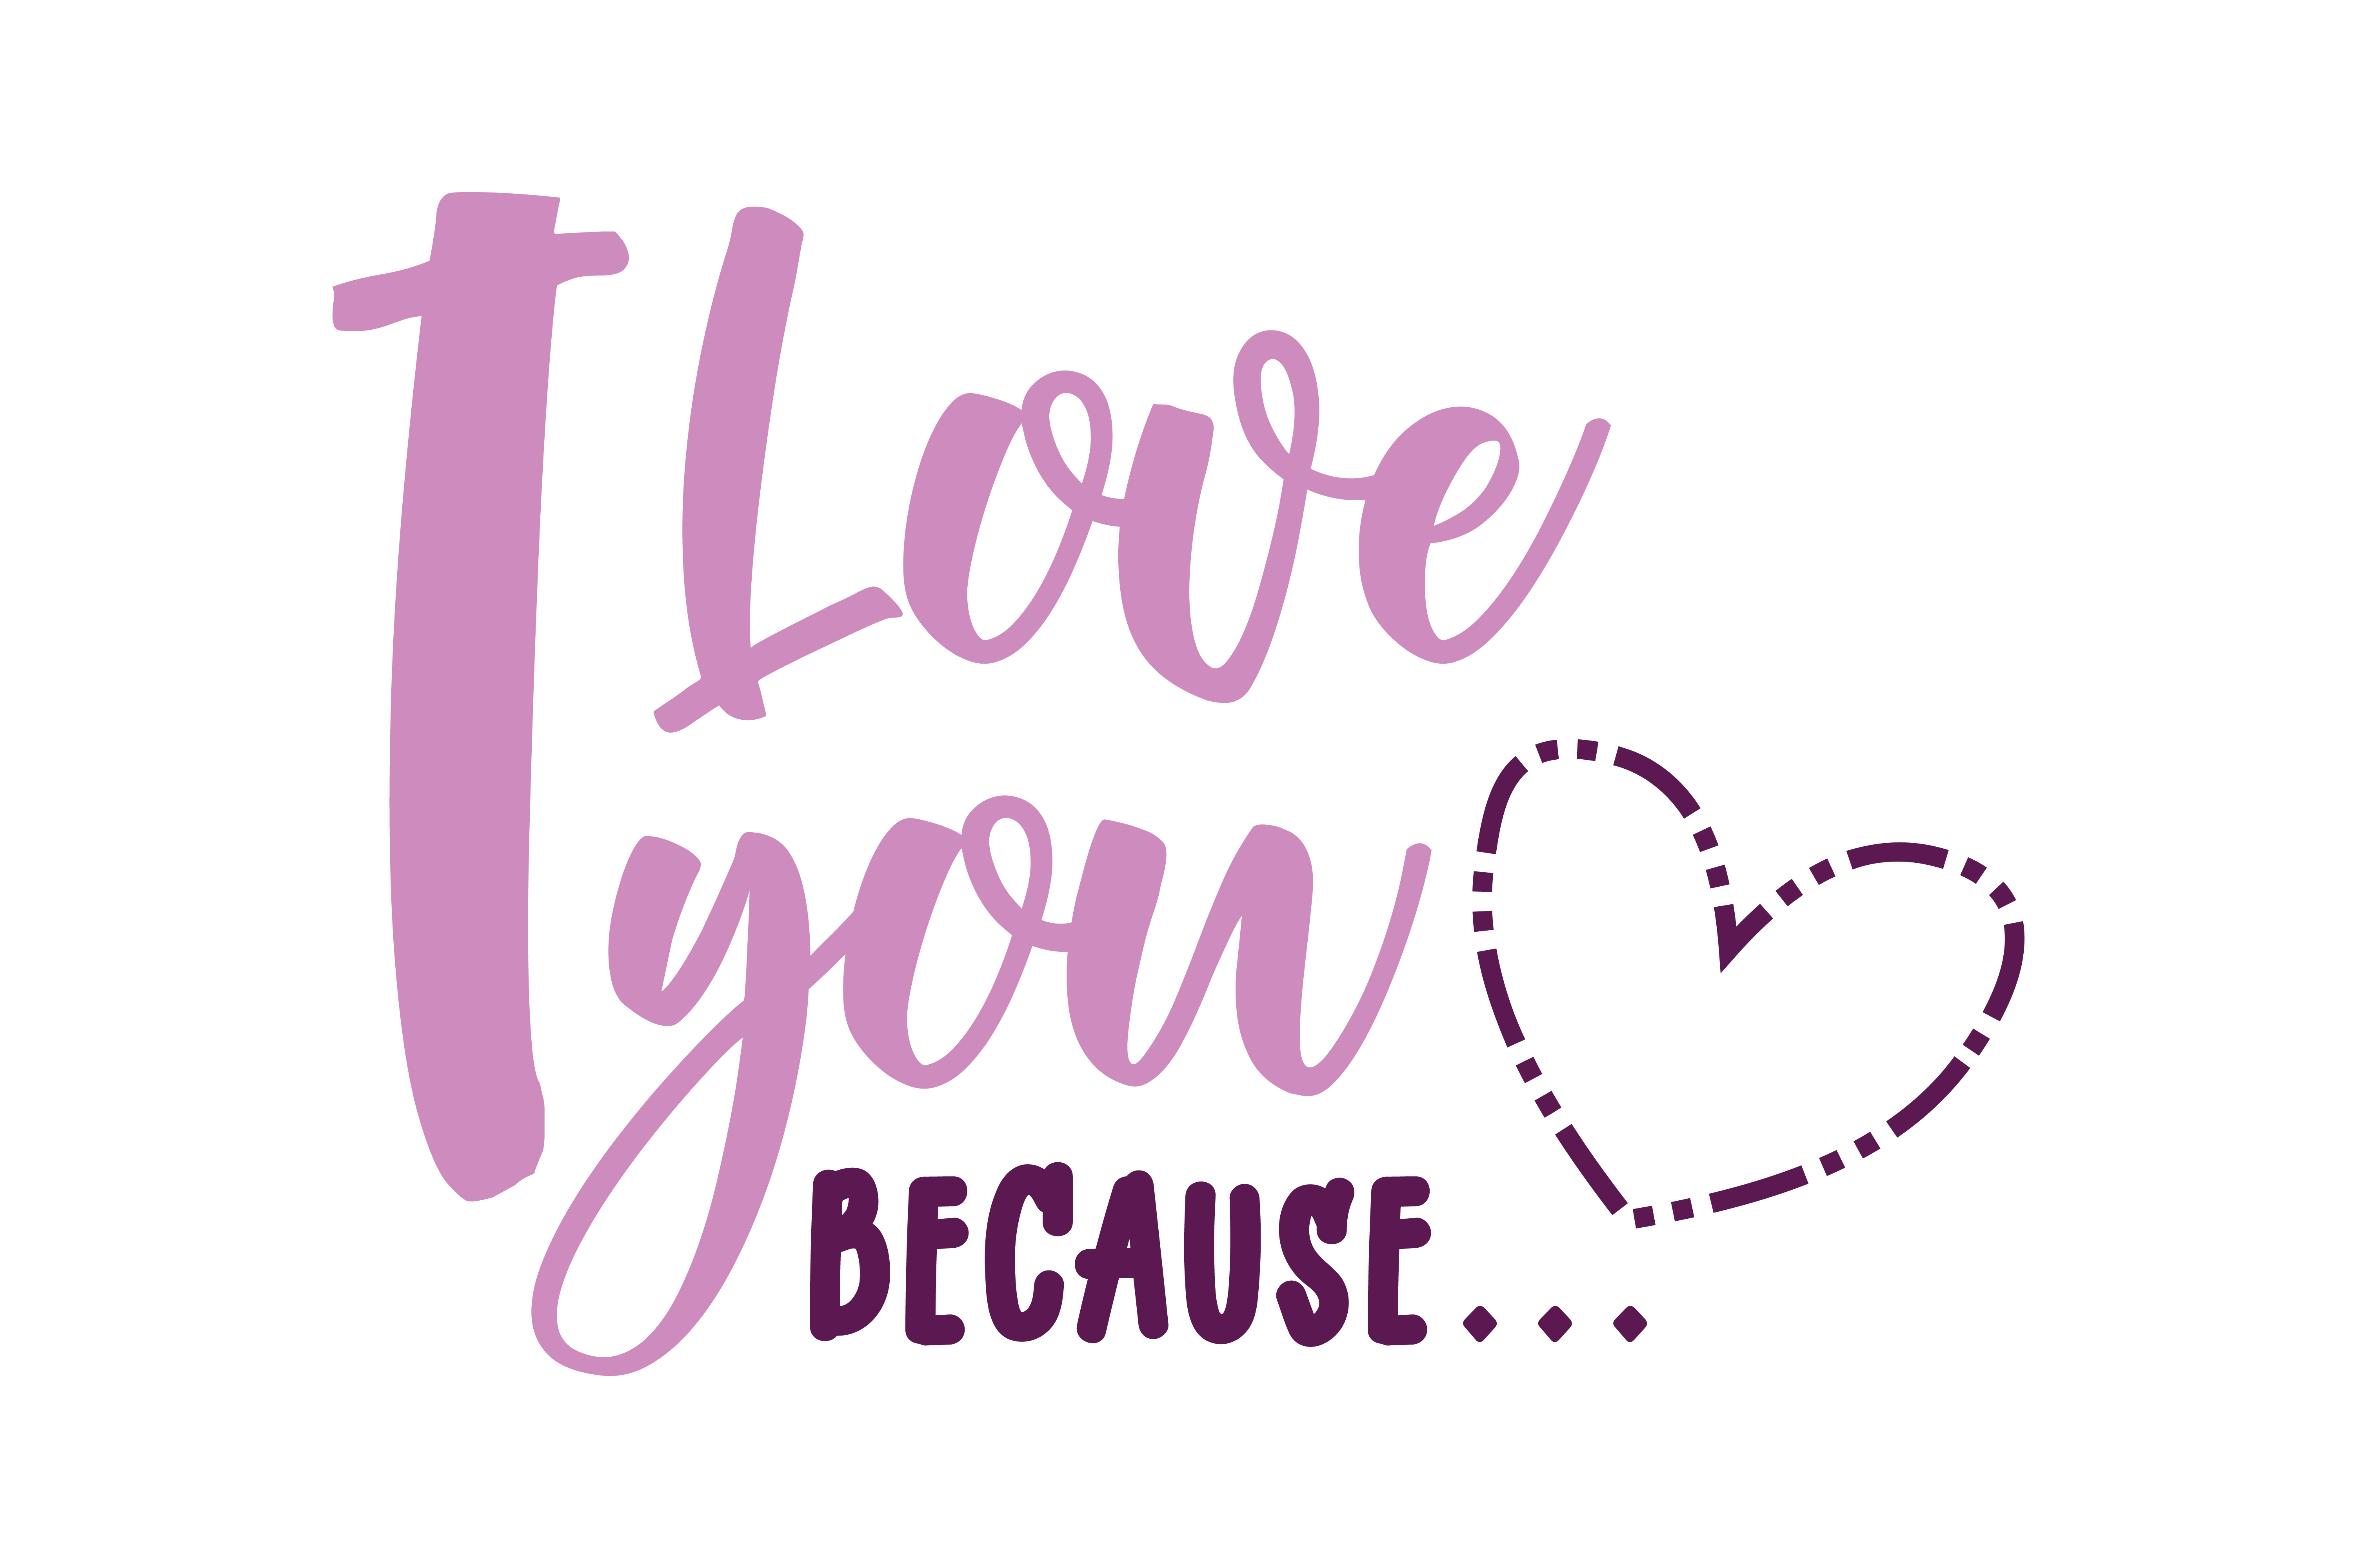 Download Free I Love You Because Quote Svg Cut Graphic By Yuhana Purwanti for Cricut Explore, Silhouette and other cutting machines.